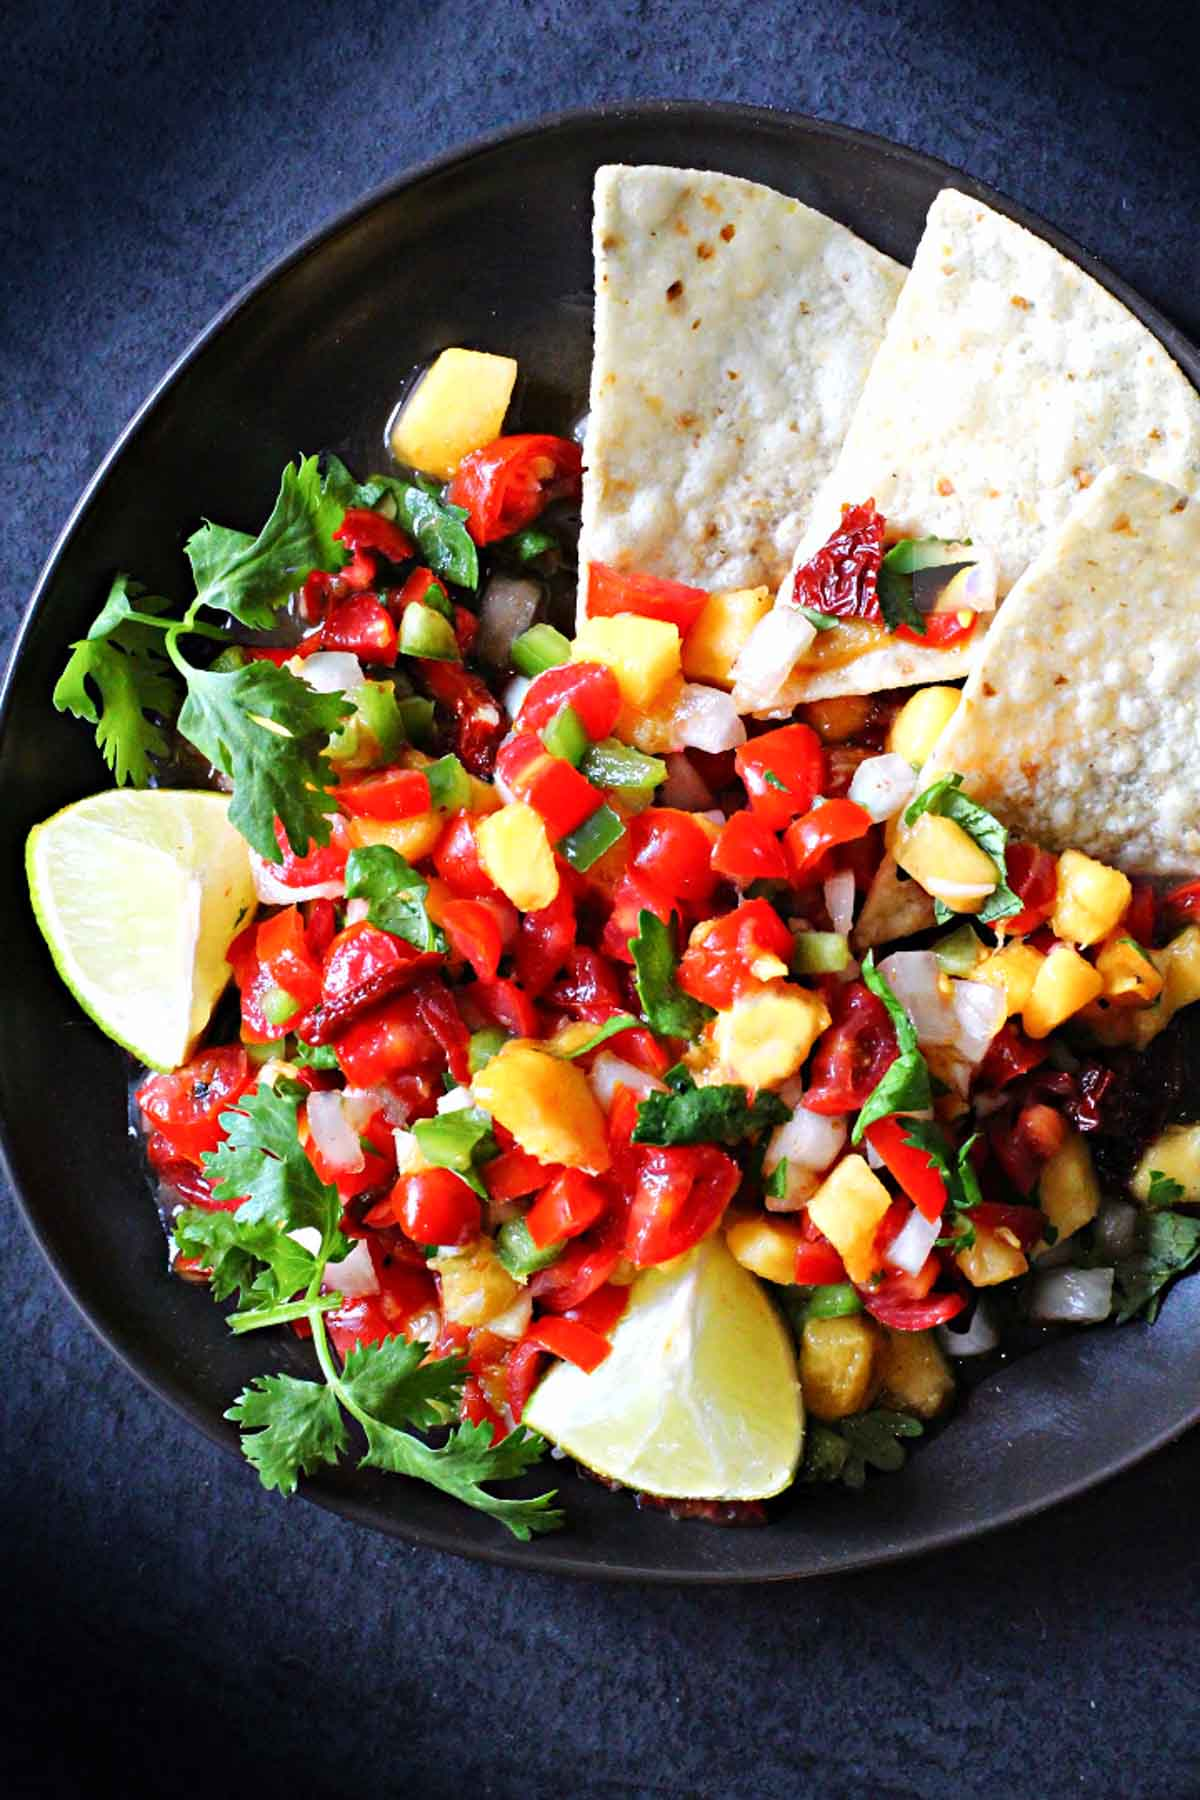 spicy peach salsa recipe served with tortilla chips